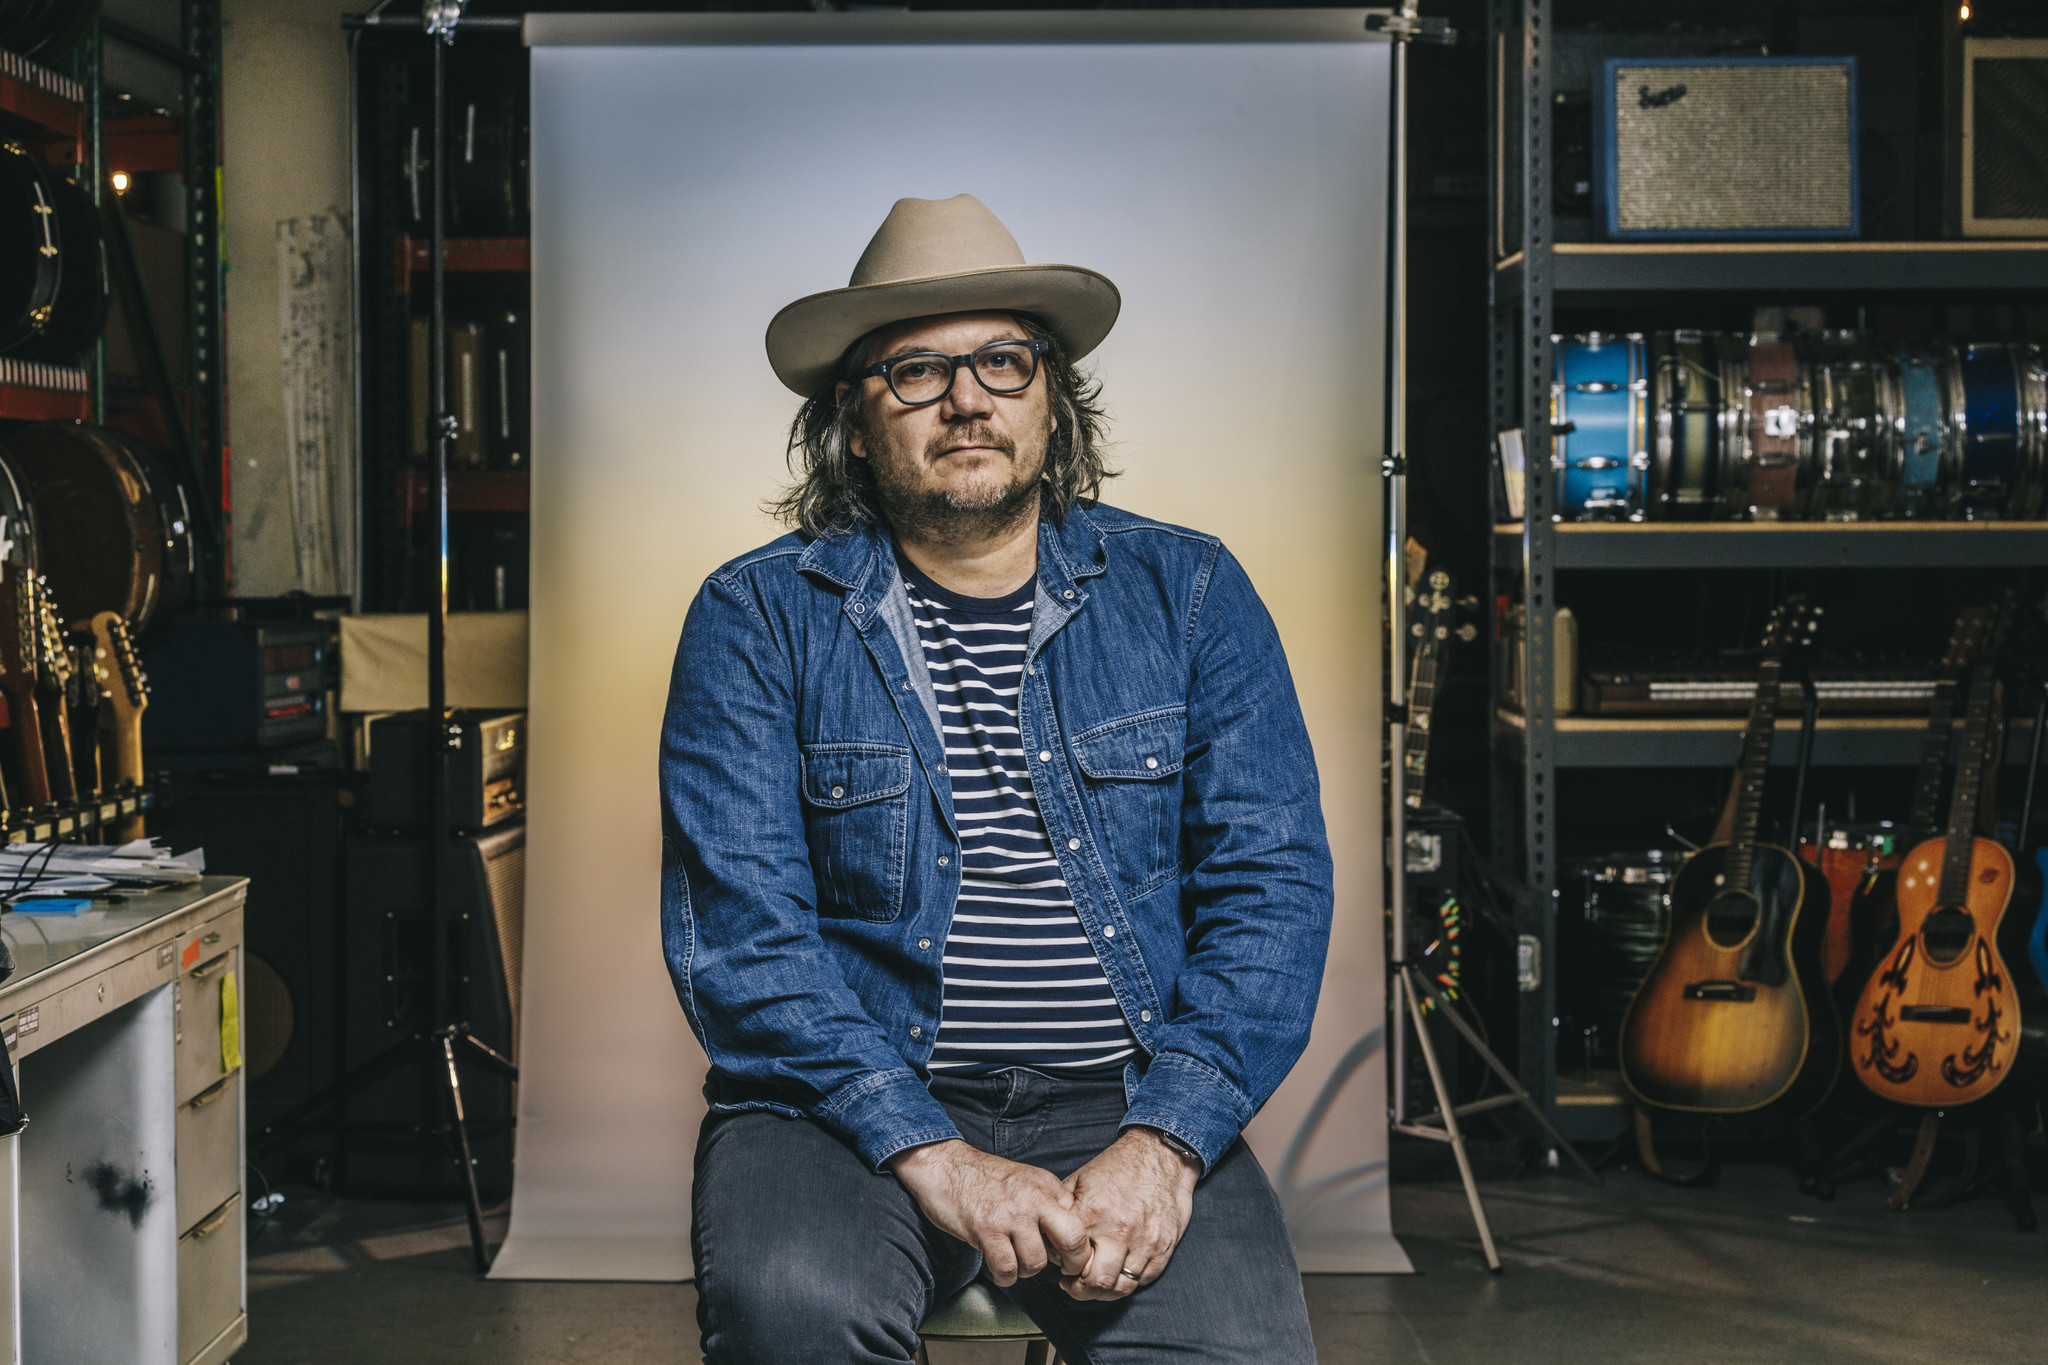 Plaat van de week: Jeff Tweedy – Some Birds